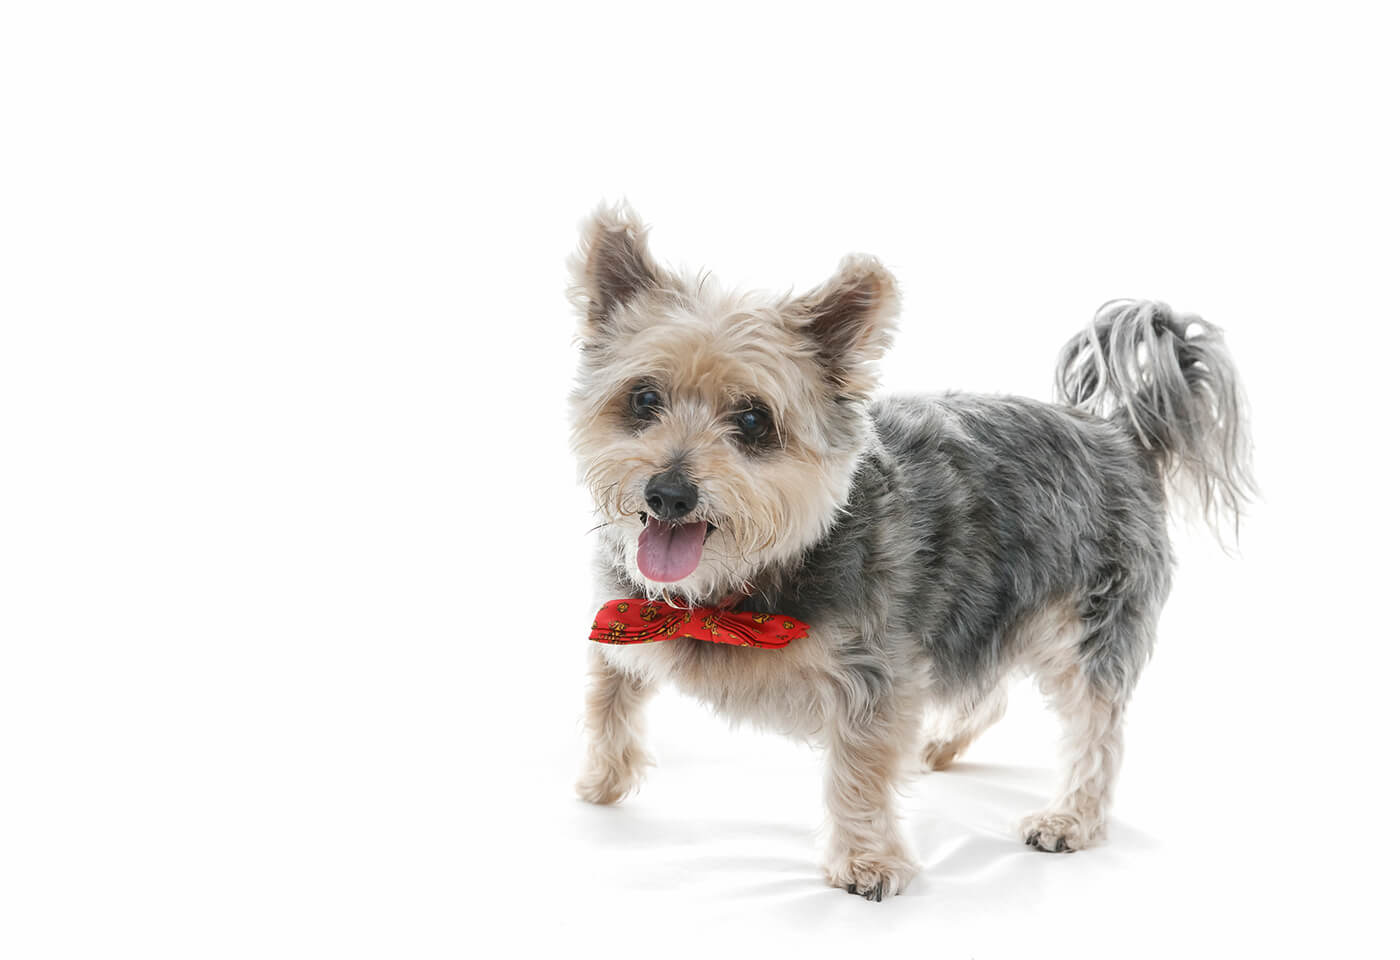 Studio photography of pet terrier by Scott Stramyk